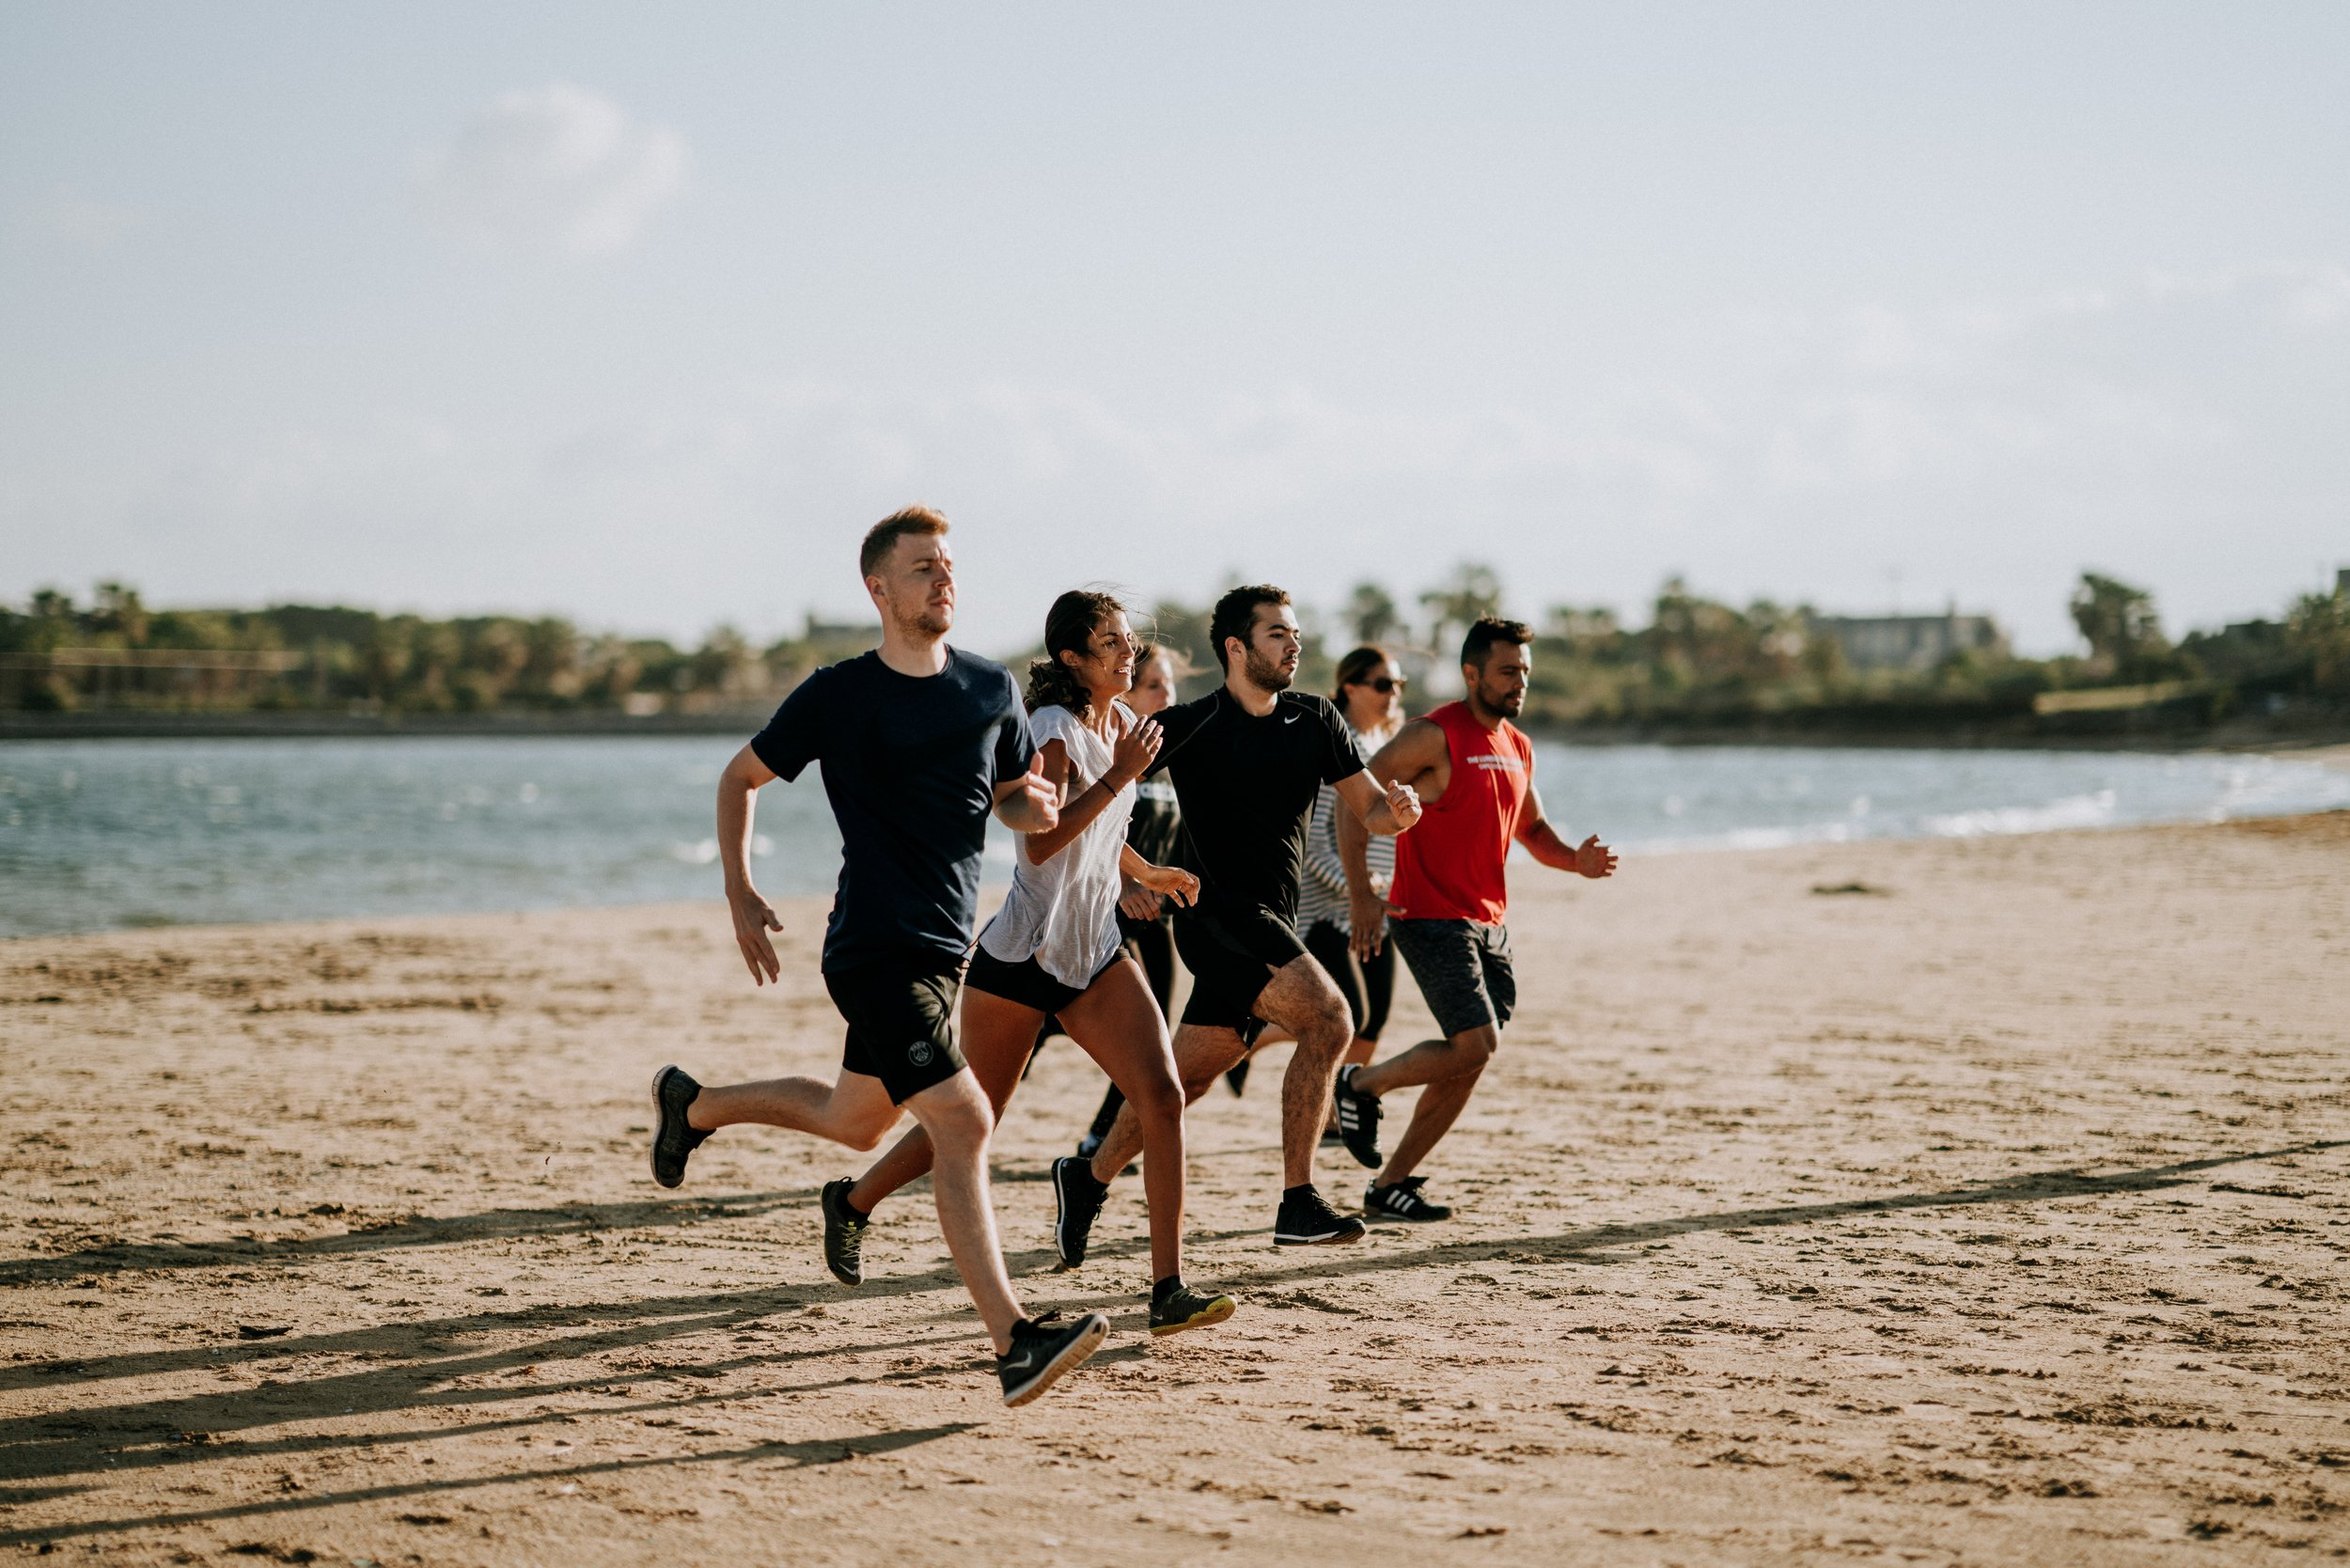 Running with groups or friends will improve your running.